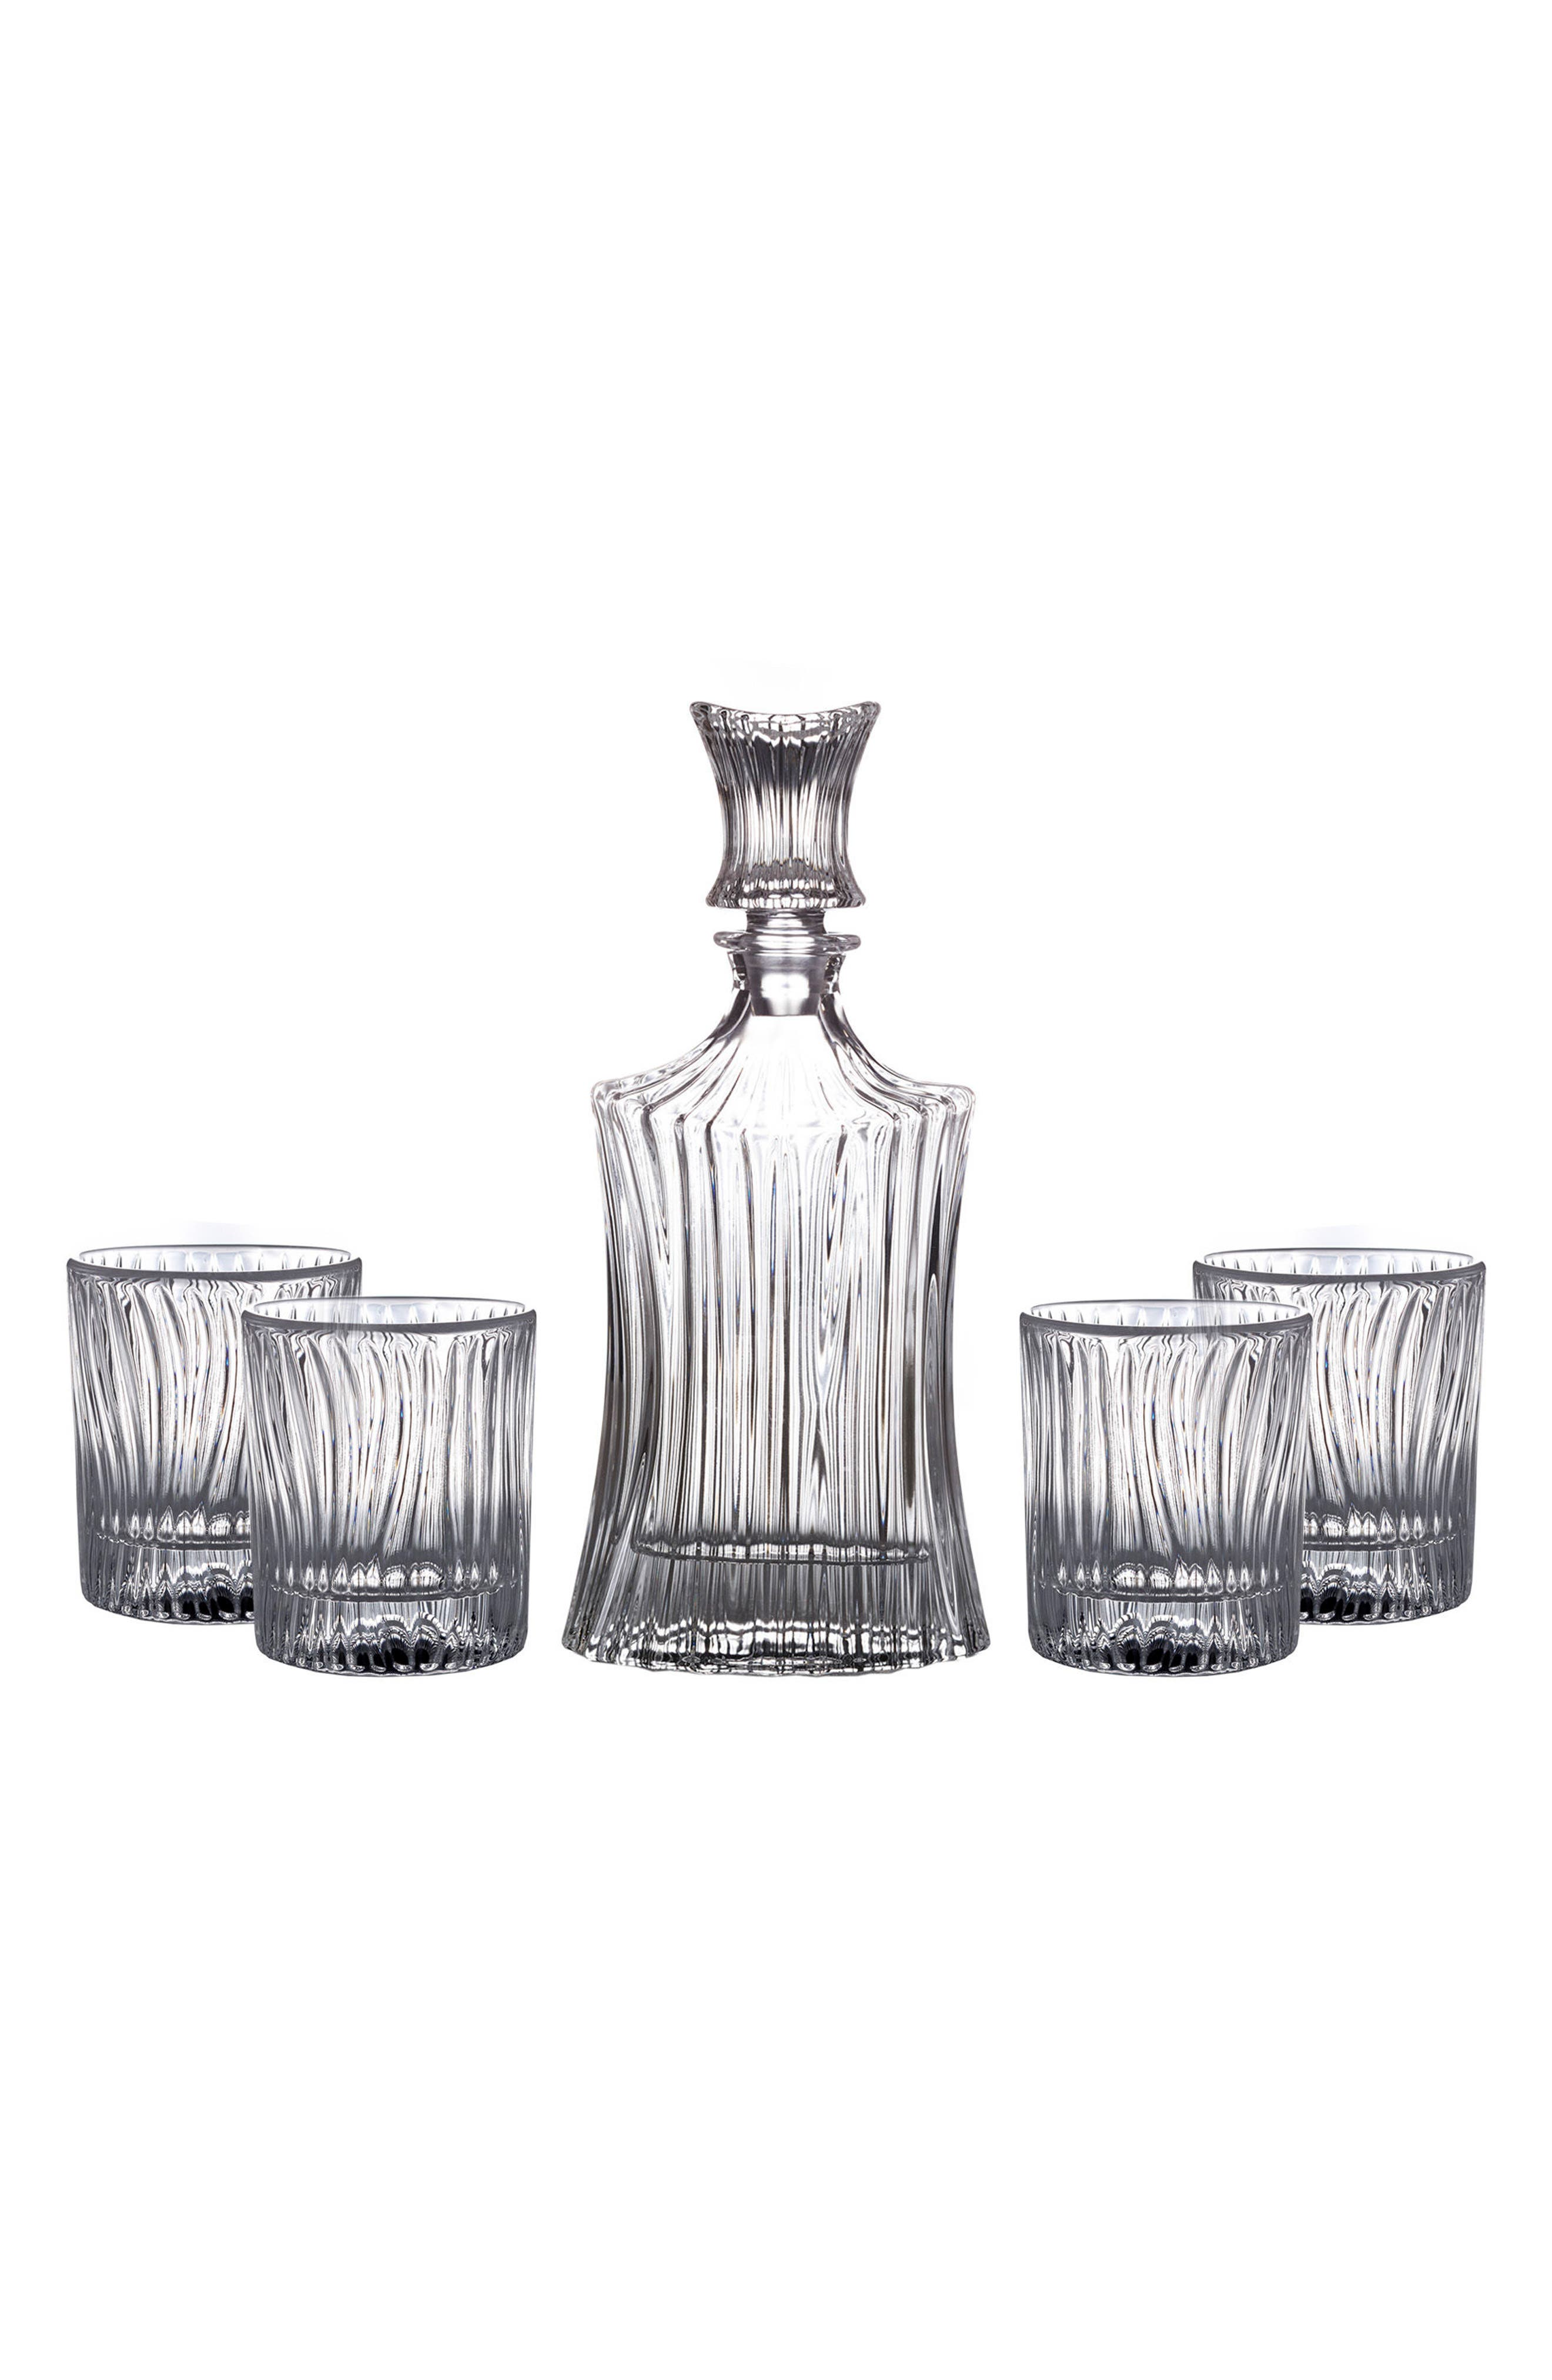 Augusta 5-Piece Decanter & Whiskey Glasses Set,                             Main thumbnail 1, color,                             100